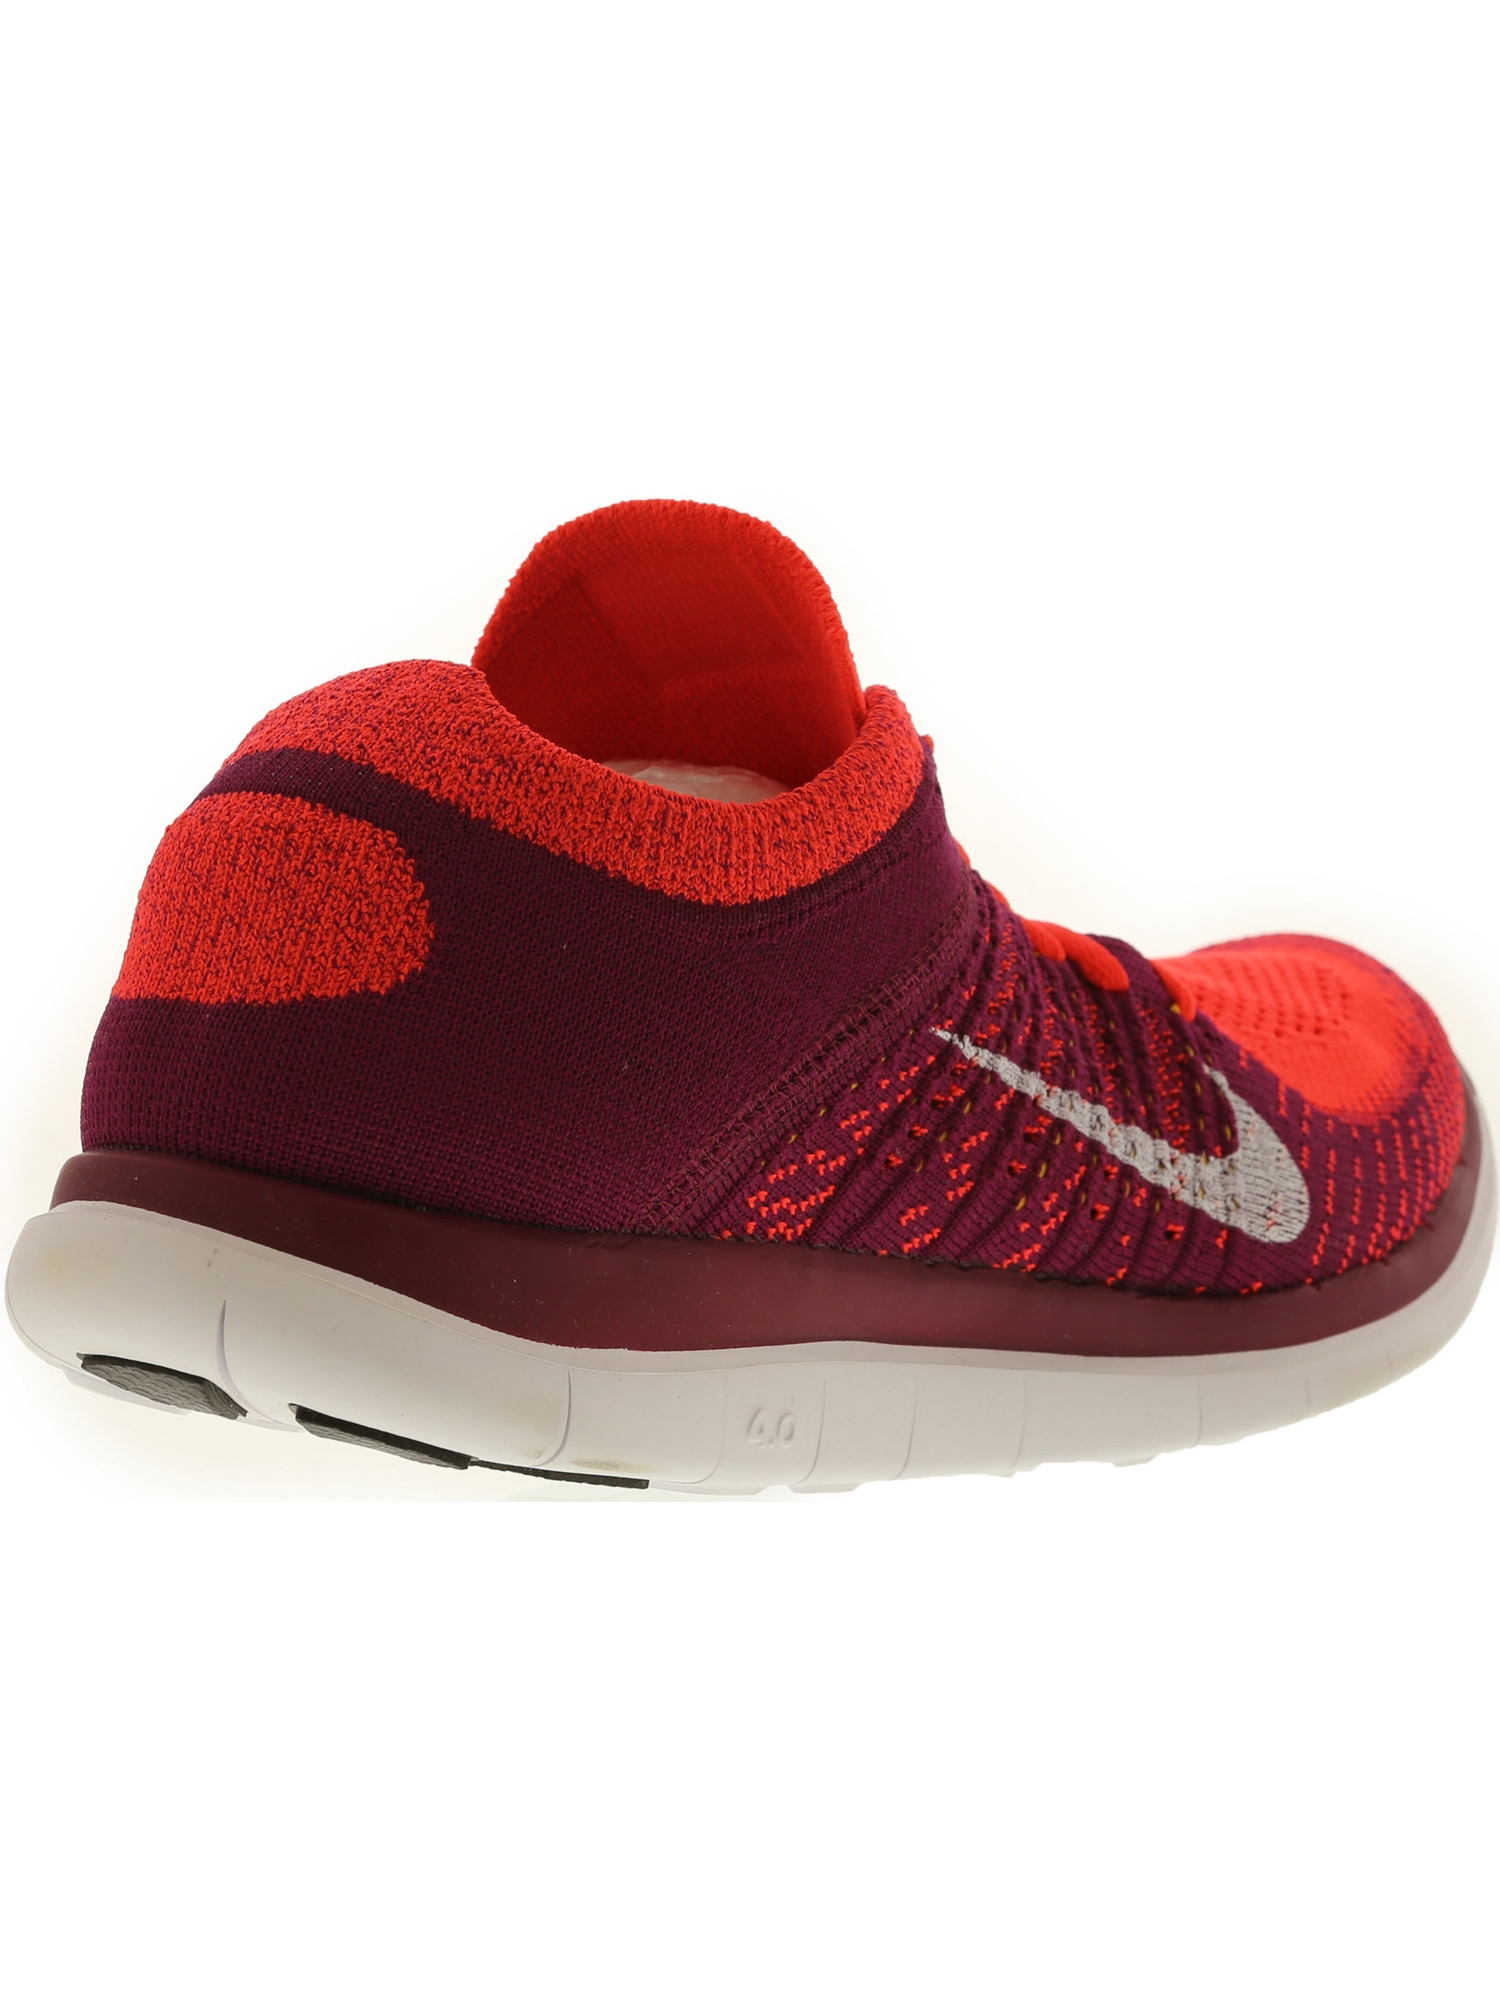 cce65c0a864b4 ... switzerland nike womens free flyknit 4.0 bright crimson white raspberry  red ankle high fabric running shoe